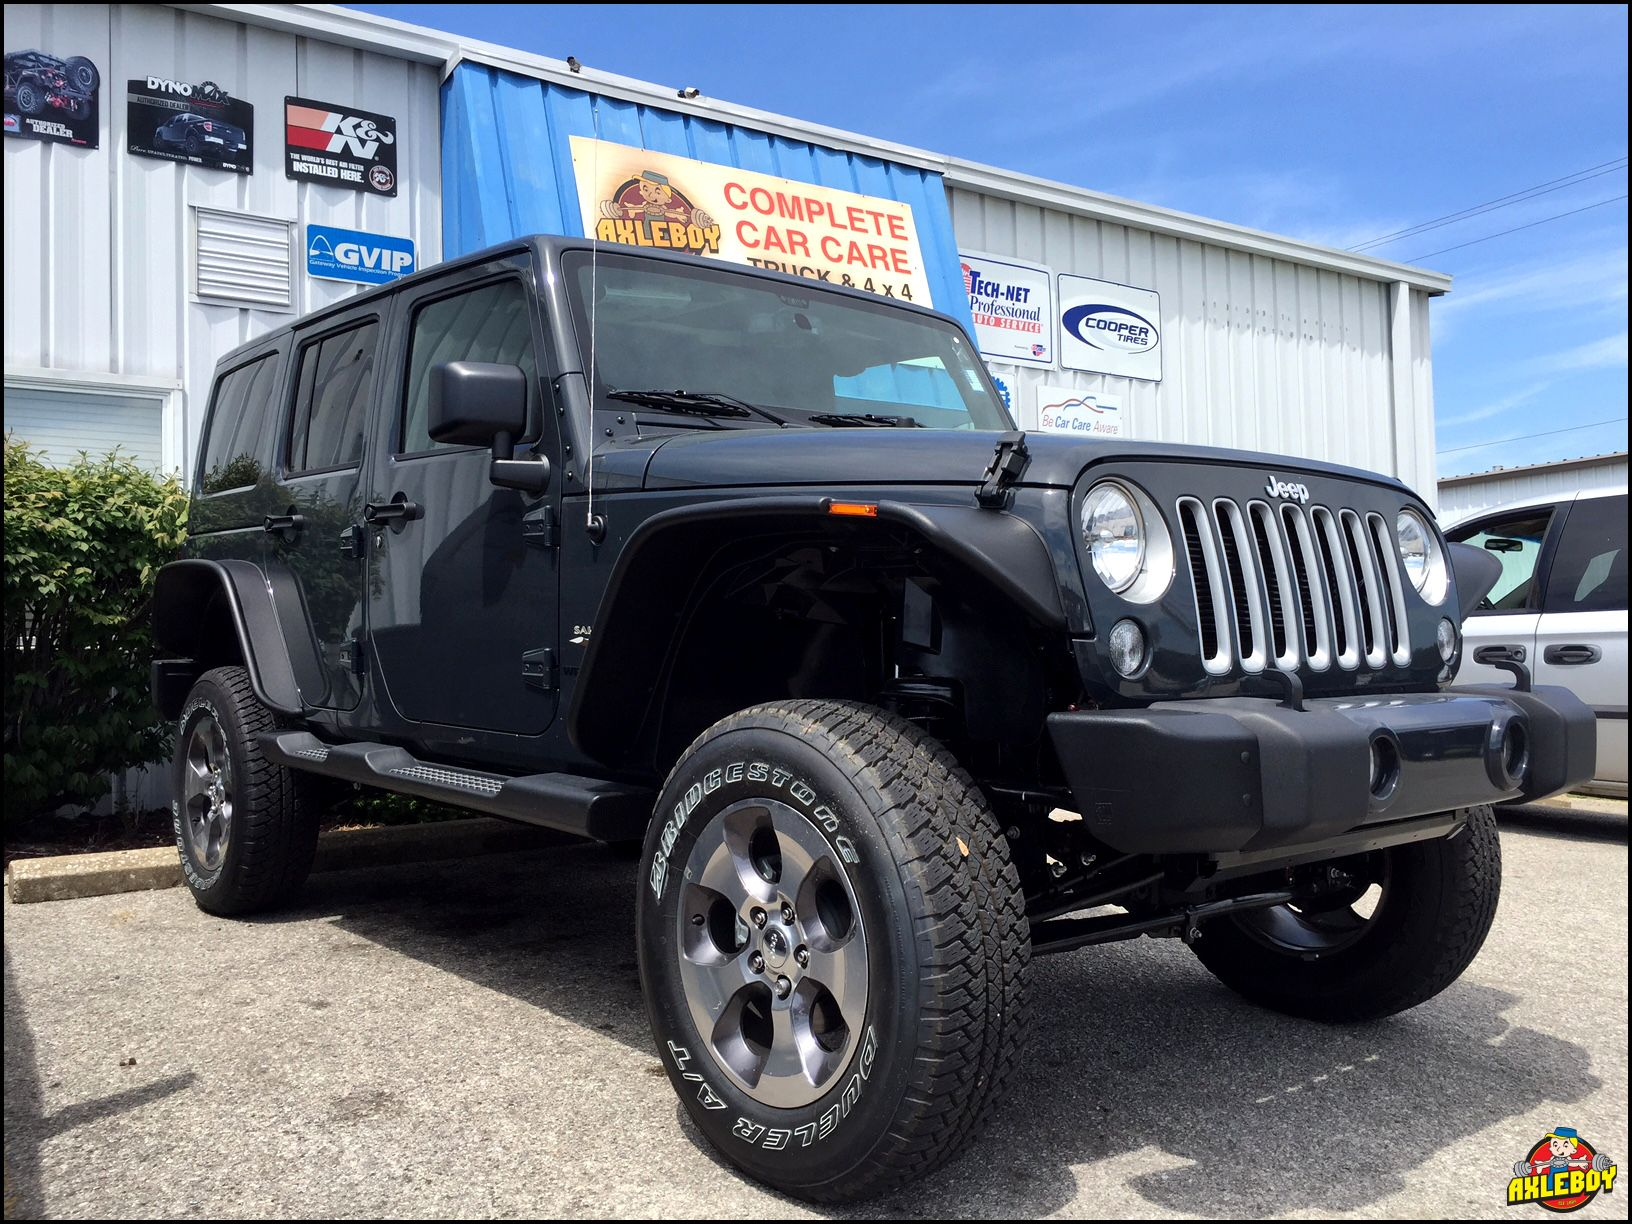 All That Lift 3 Teraflex And Flat Fenders On A 2016 Jeep Wrangler And Still Rolling On Stock Tires And Wheels Lol Jeep Shop 2016 Jeep Wrangler Black Jeep